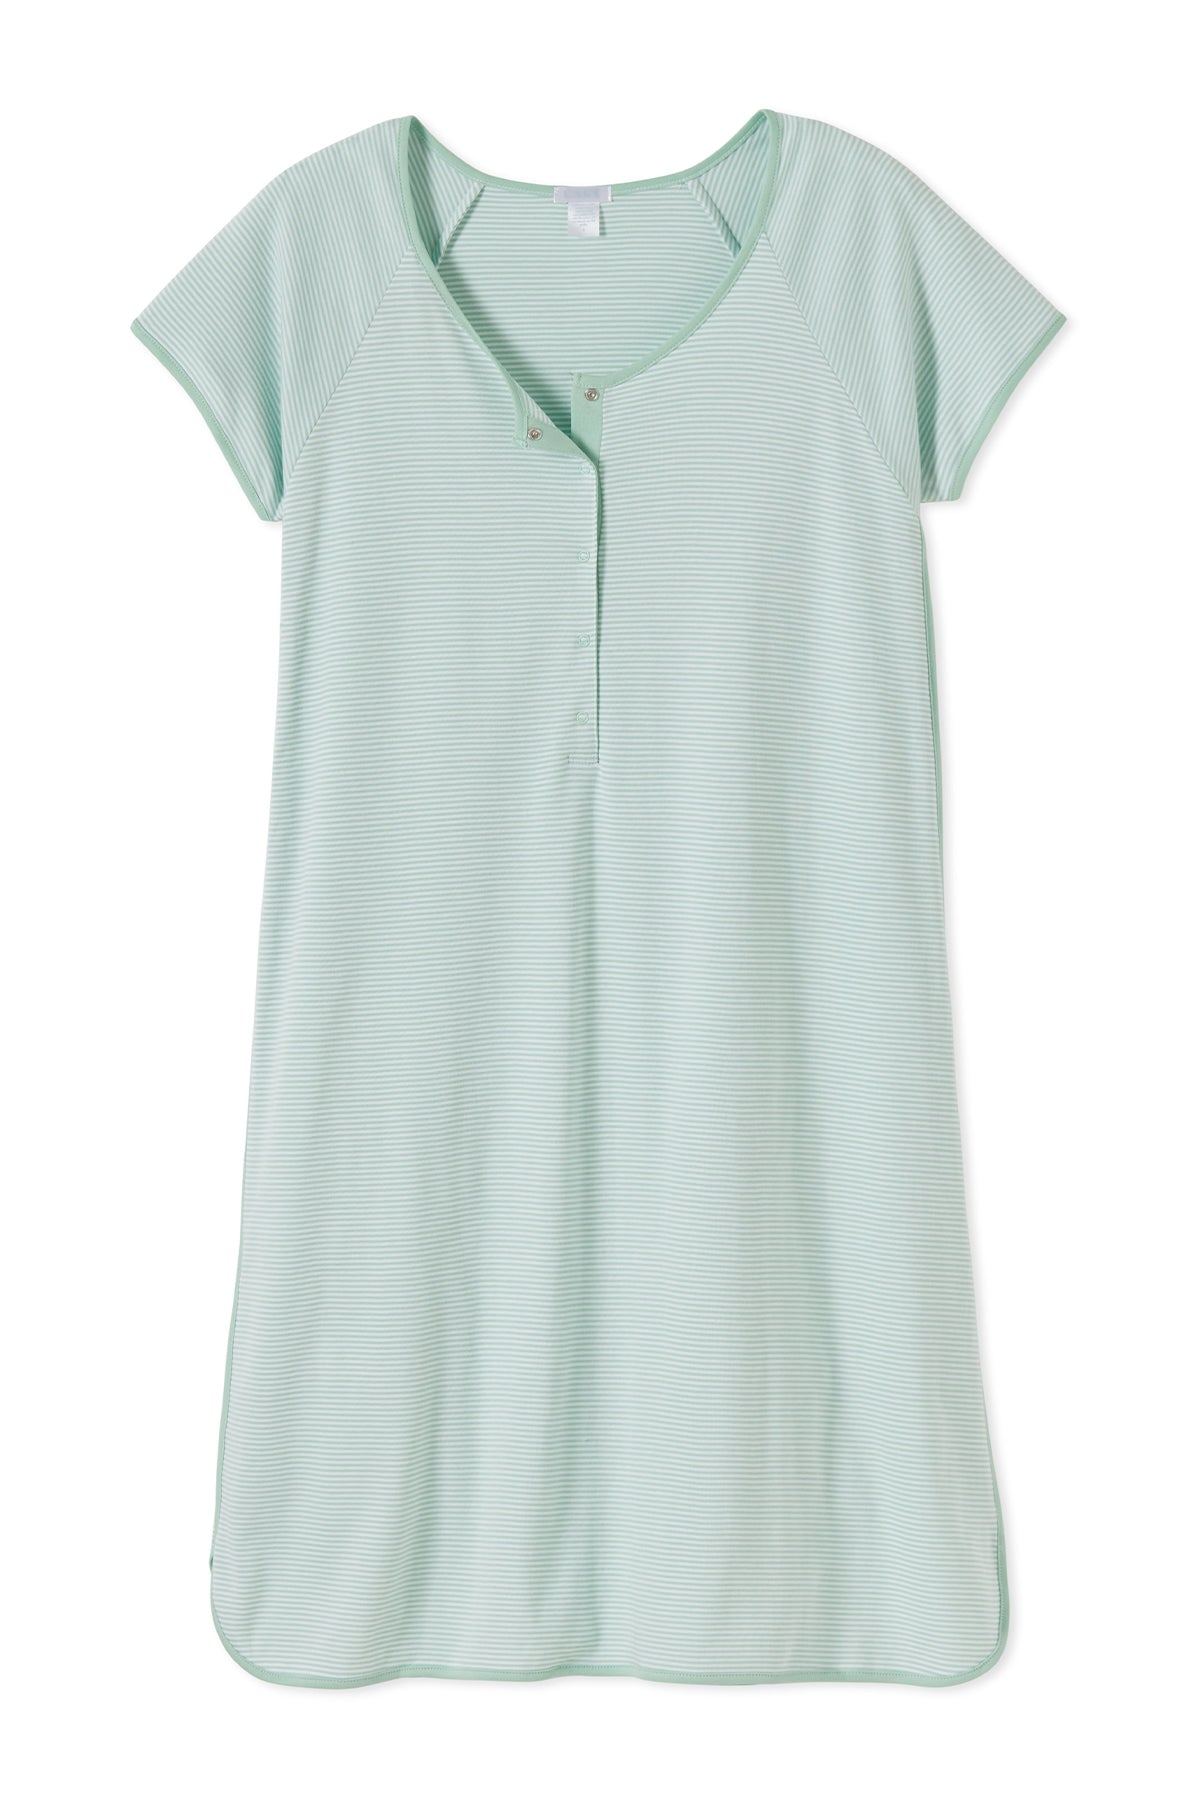 Pima Maternity Nightgown in Parisian Green